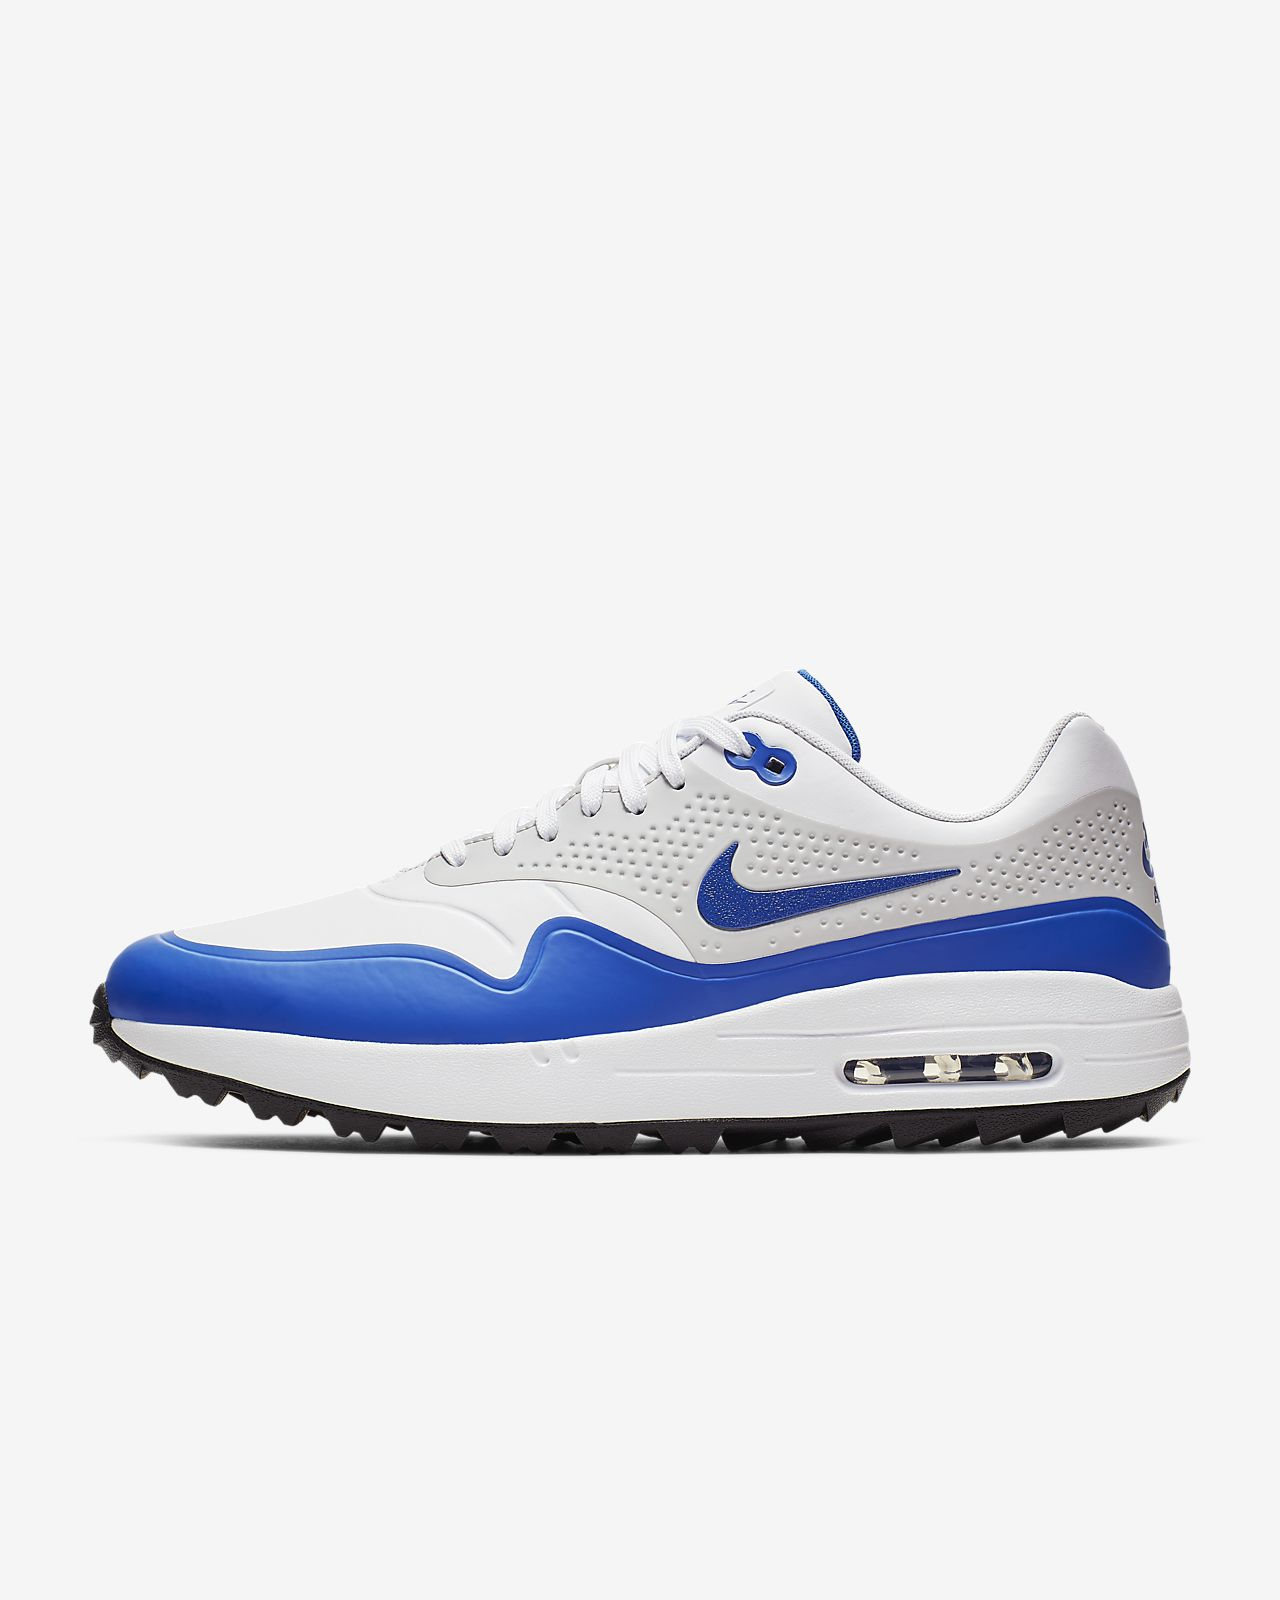 8e2cd41712 Nike Air Max 1 G Men's Golf Shoe. Nike.com